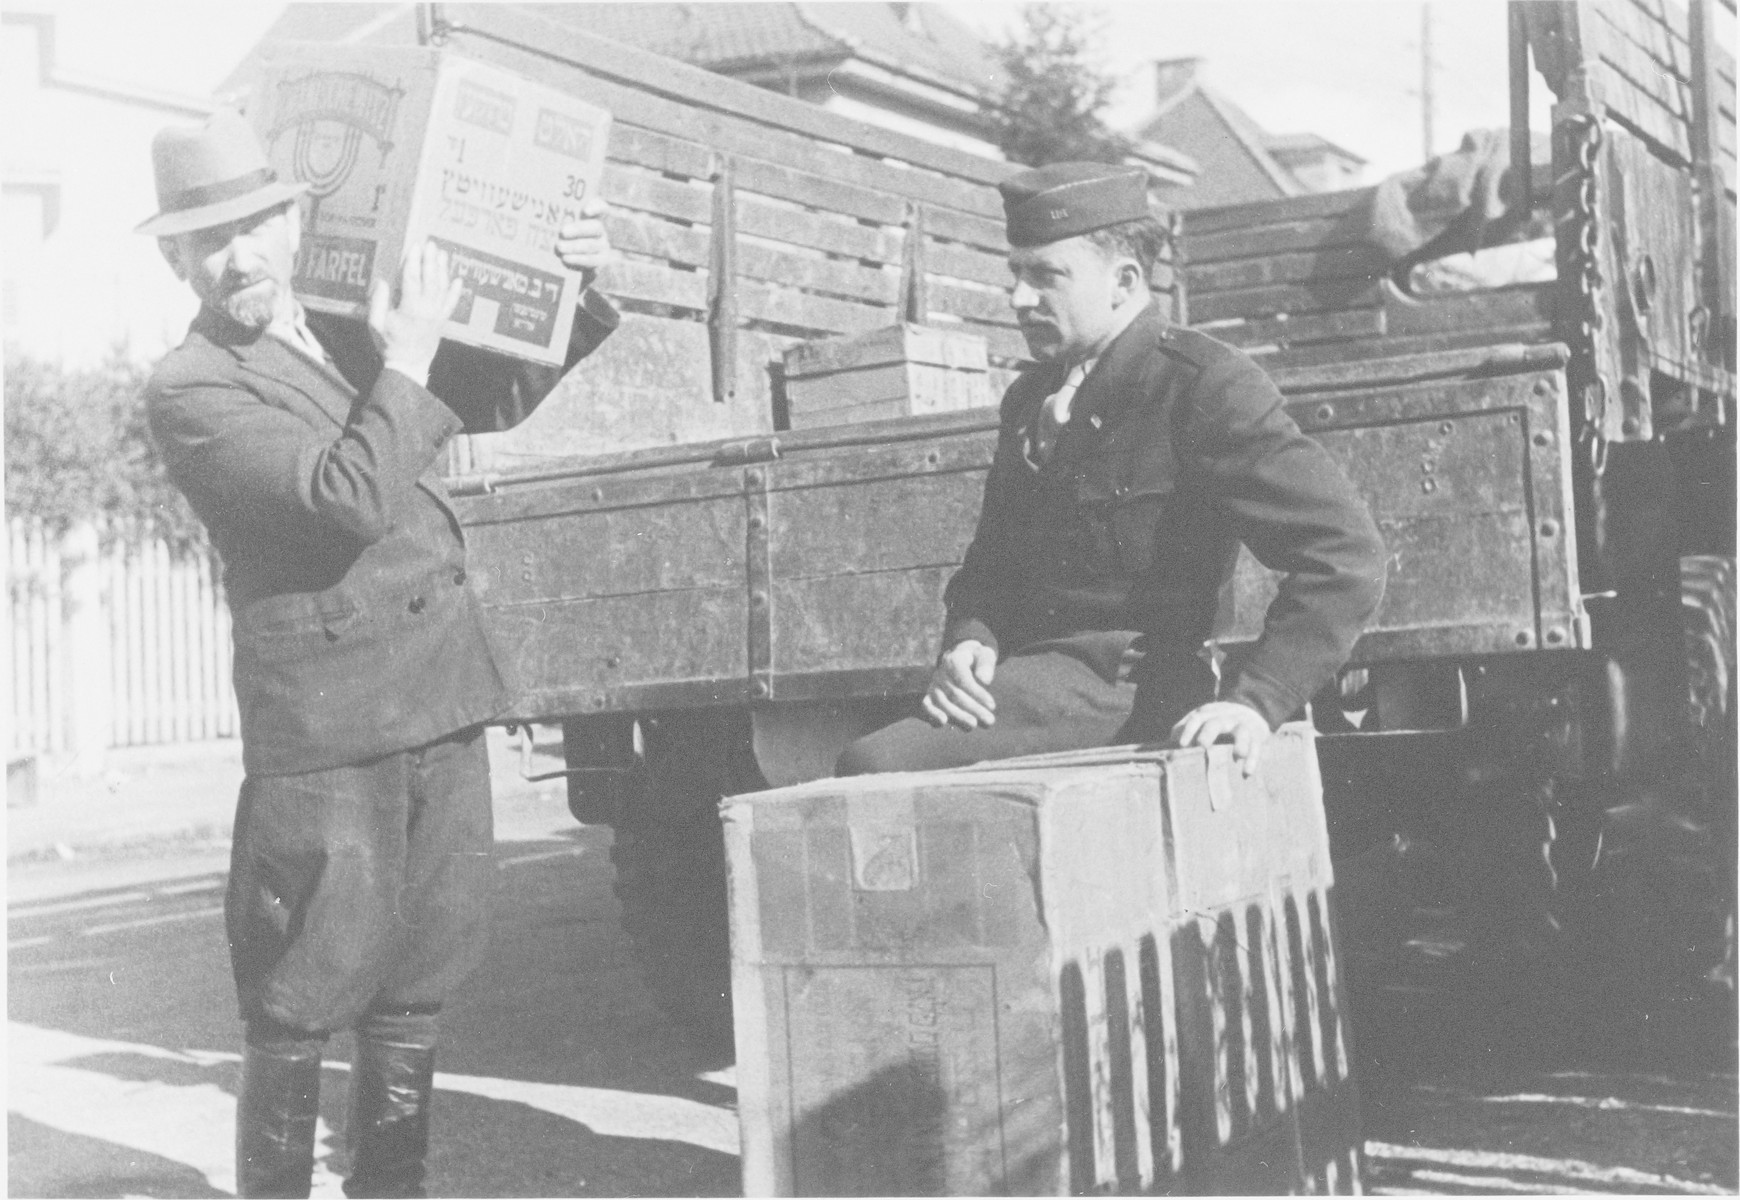 Rabbi Nathan Baruch oversees the unloading of Passover matza in an unidentified displaced persons' camp.